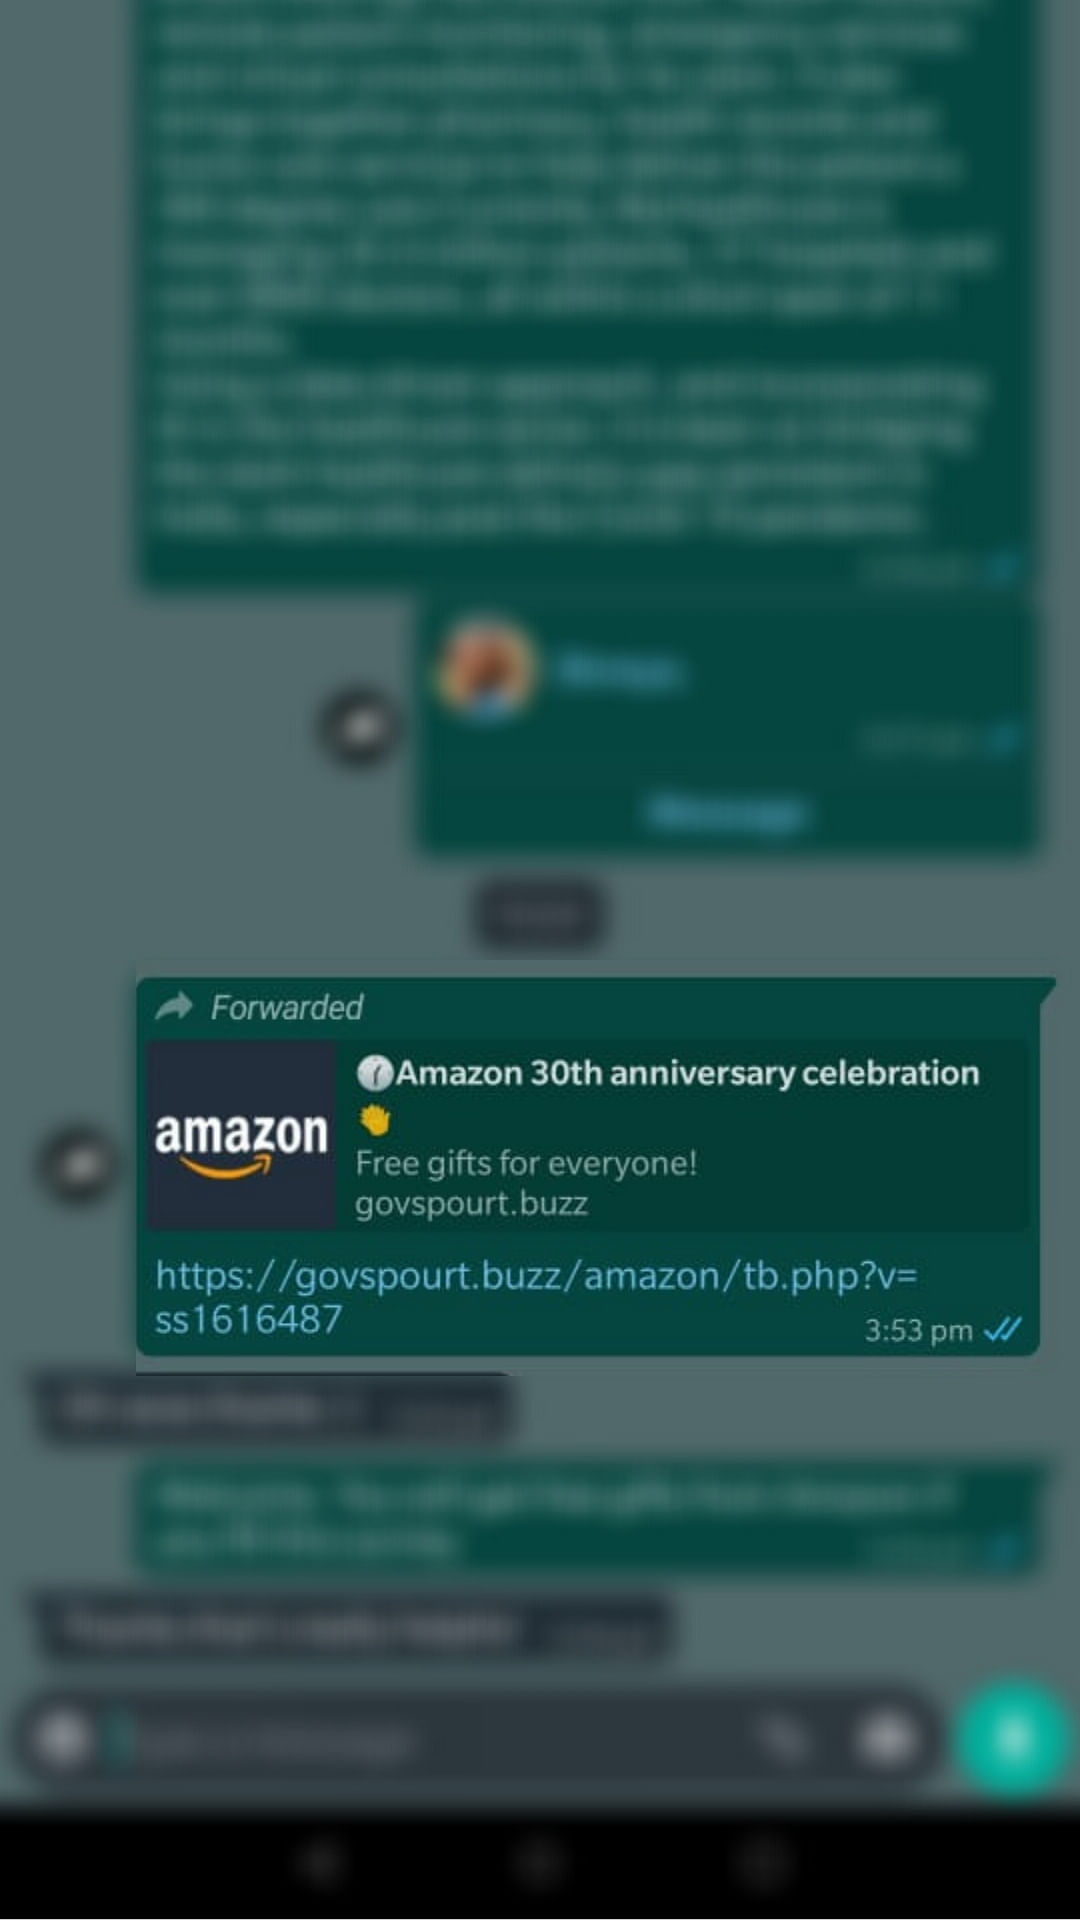 Forward message that claims that Amazon is giving free gifts to users on its 30th anniversary.